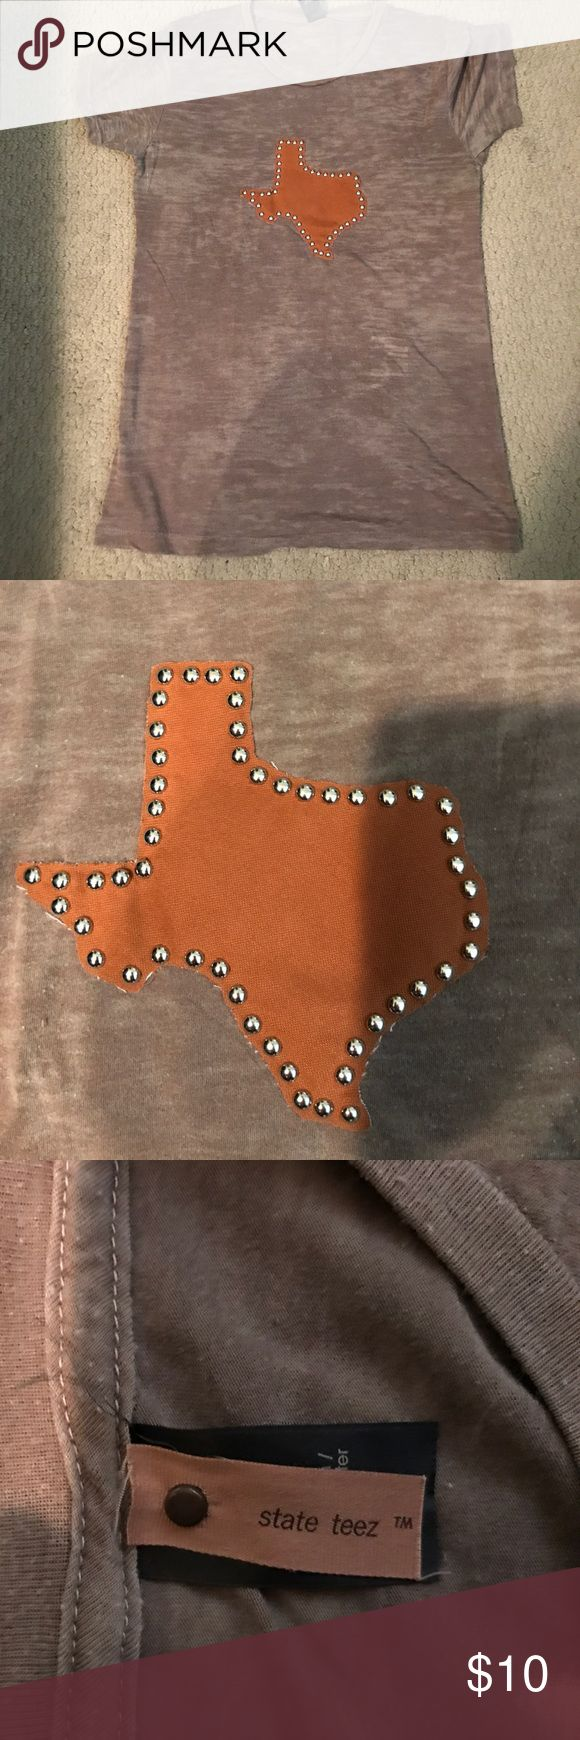 Texas appliqué burnout t-shirt Texas appliqué w silver nail stud detailing, burnt orange Texas on brown shirt, purchased in Texas boutique, soft, washed and laid flat to dry - never machine dried, nonsmoking home State Teez Tops Tees - Short Sleeve